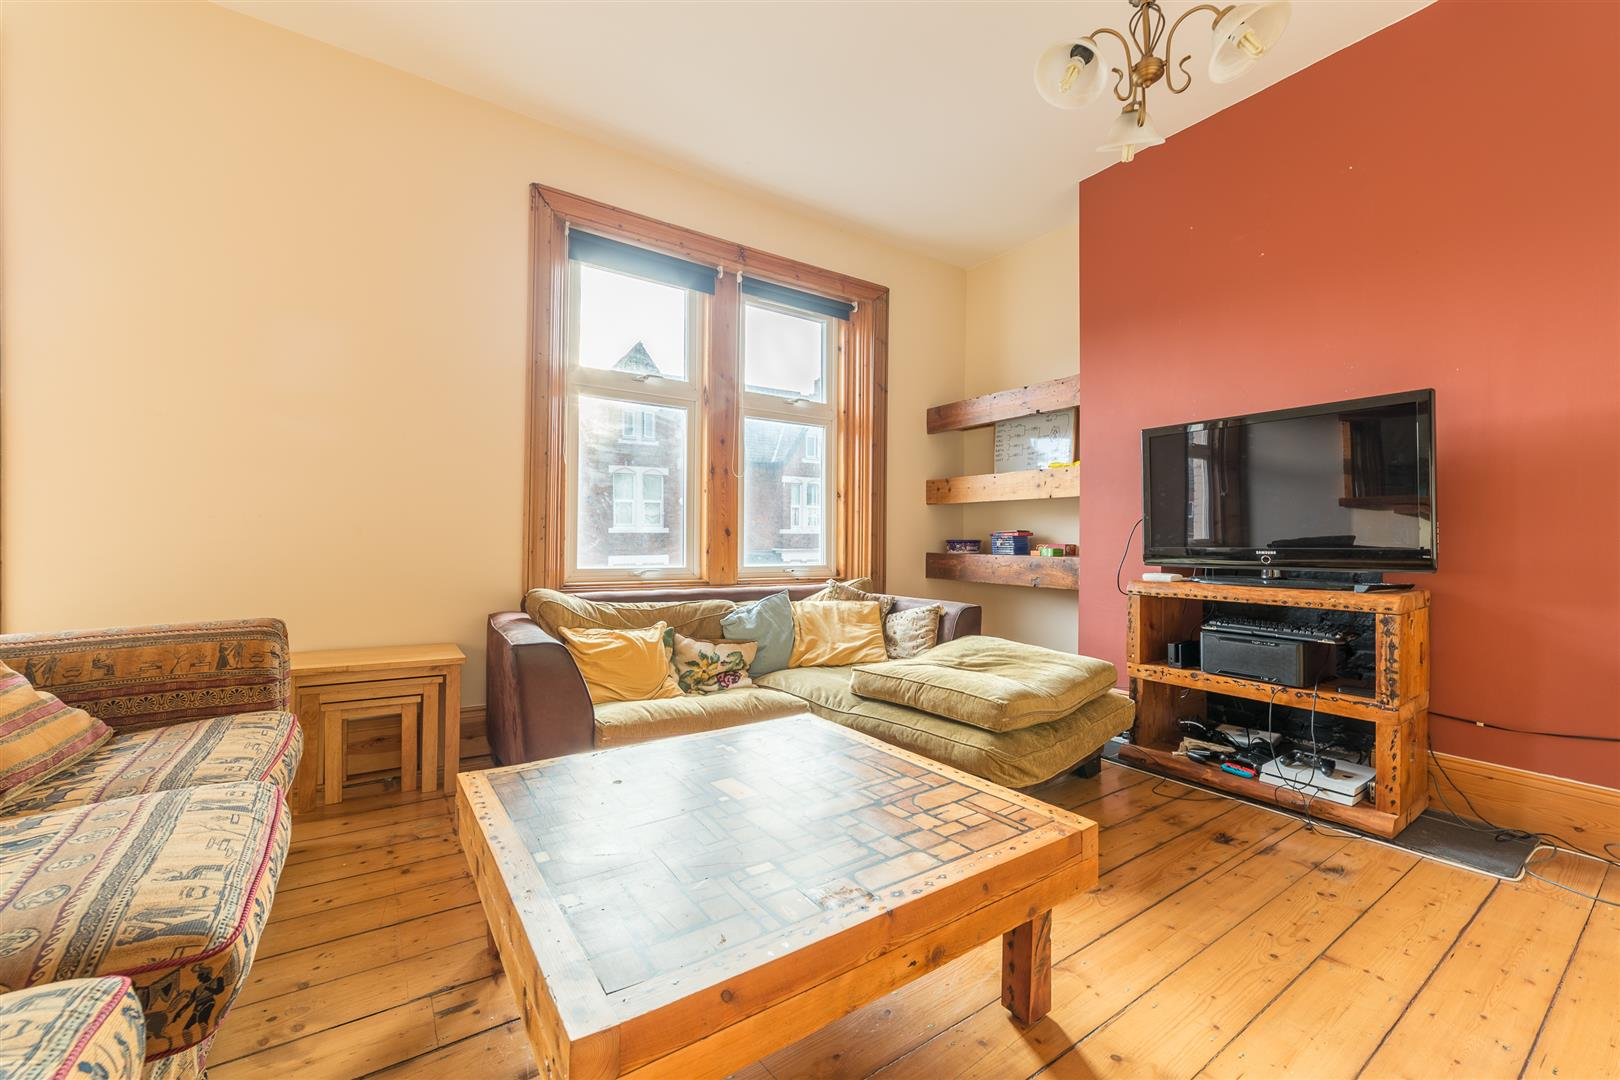 5 bed terraced house to rent in Newcastle Upon Tyne, NE4 5NL  - Property Image 8